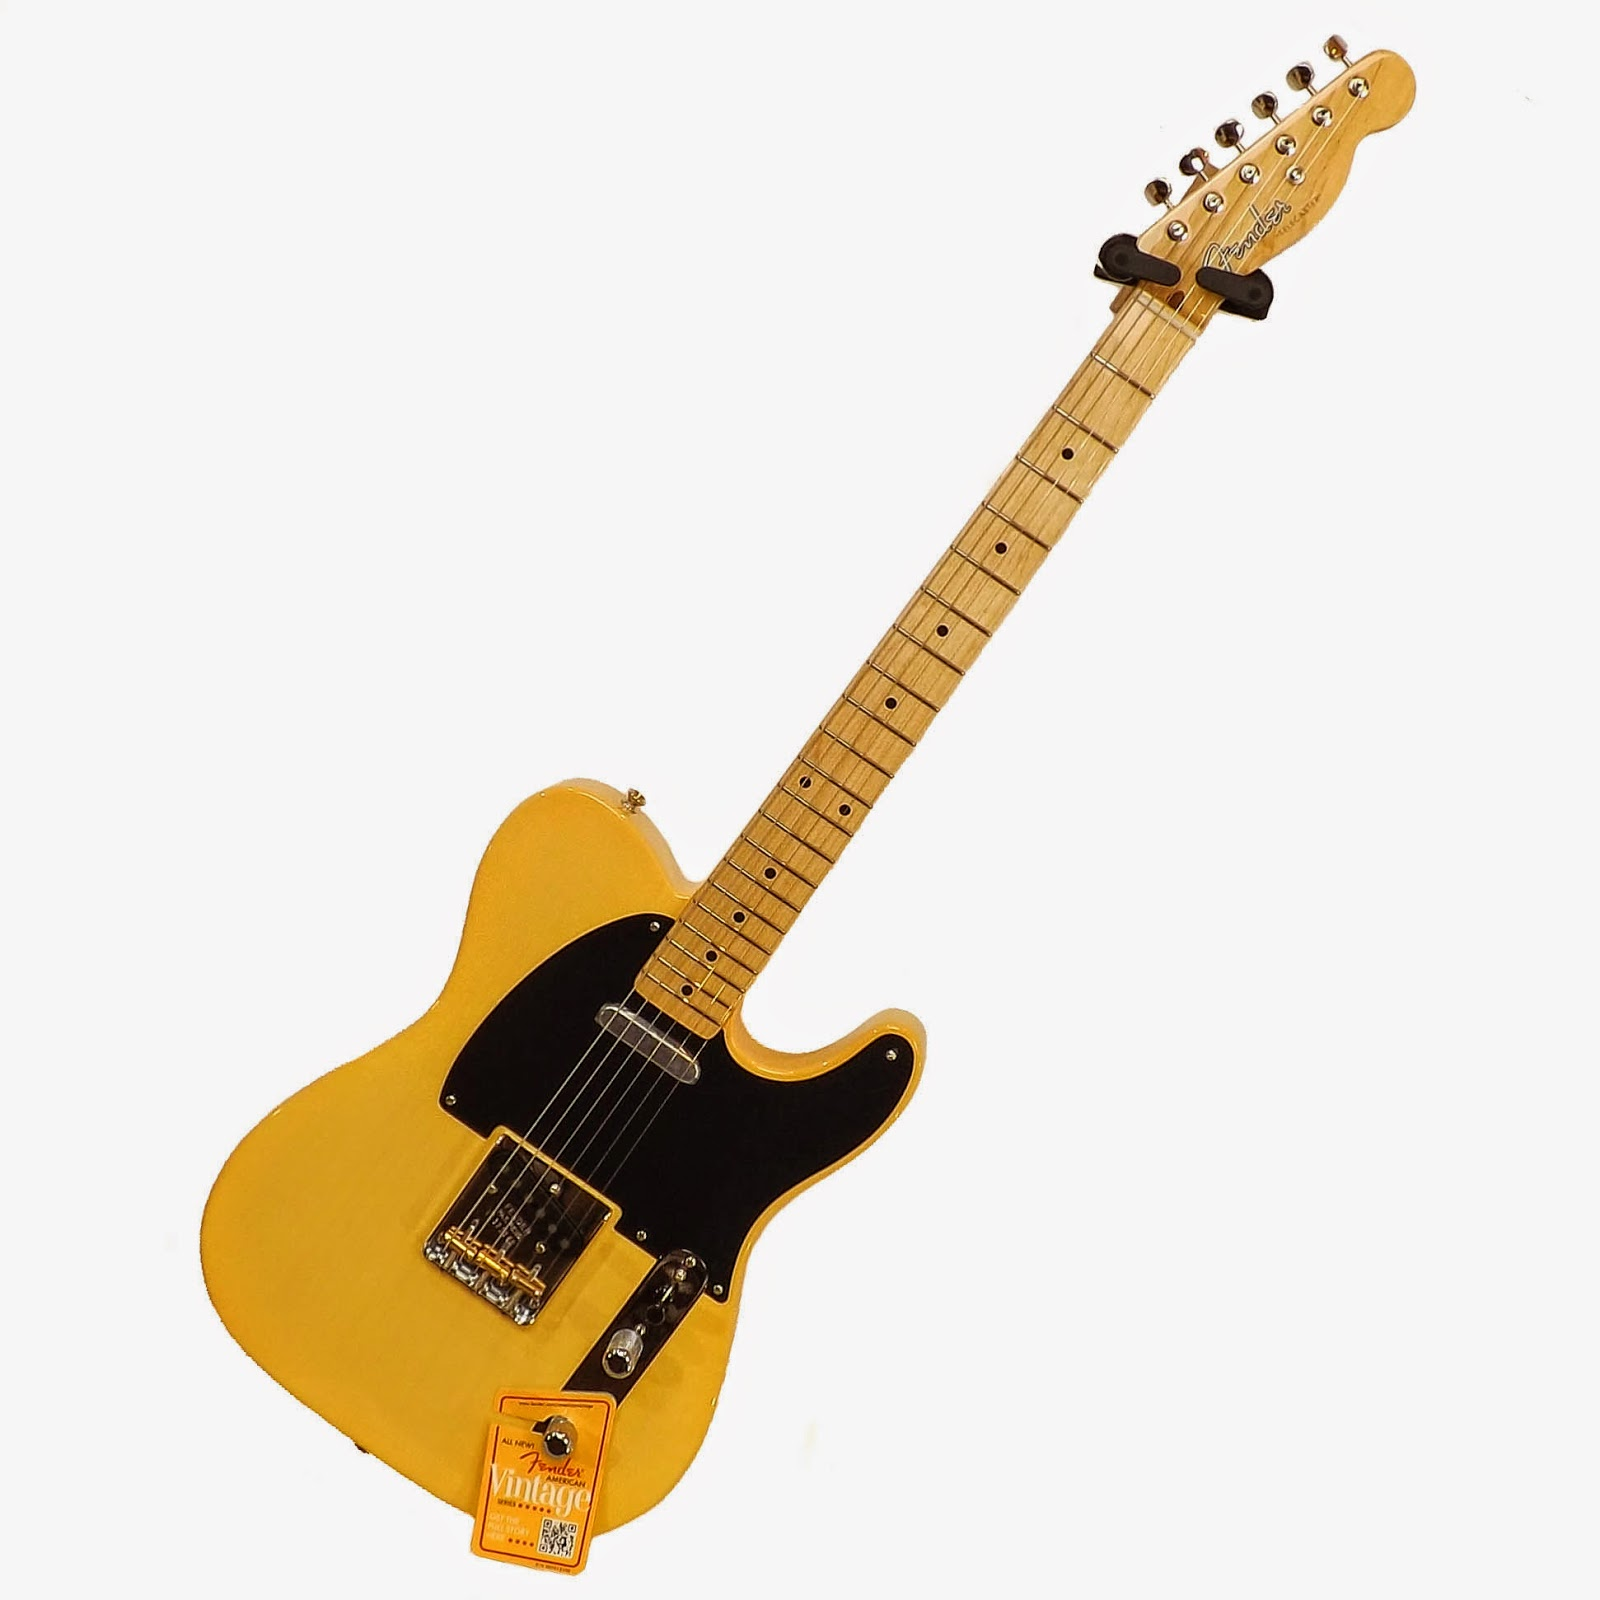 Fender American Vintage 52 Telecaster Best 2018 Wiring Diagram For 1969 Vine Hot Rod Tele 4k Wiki Wallpapers